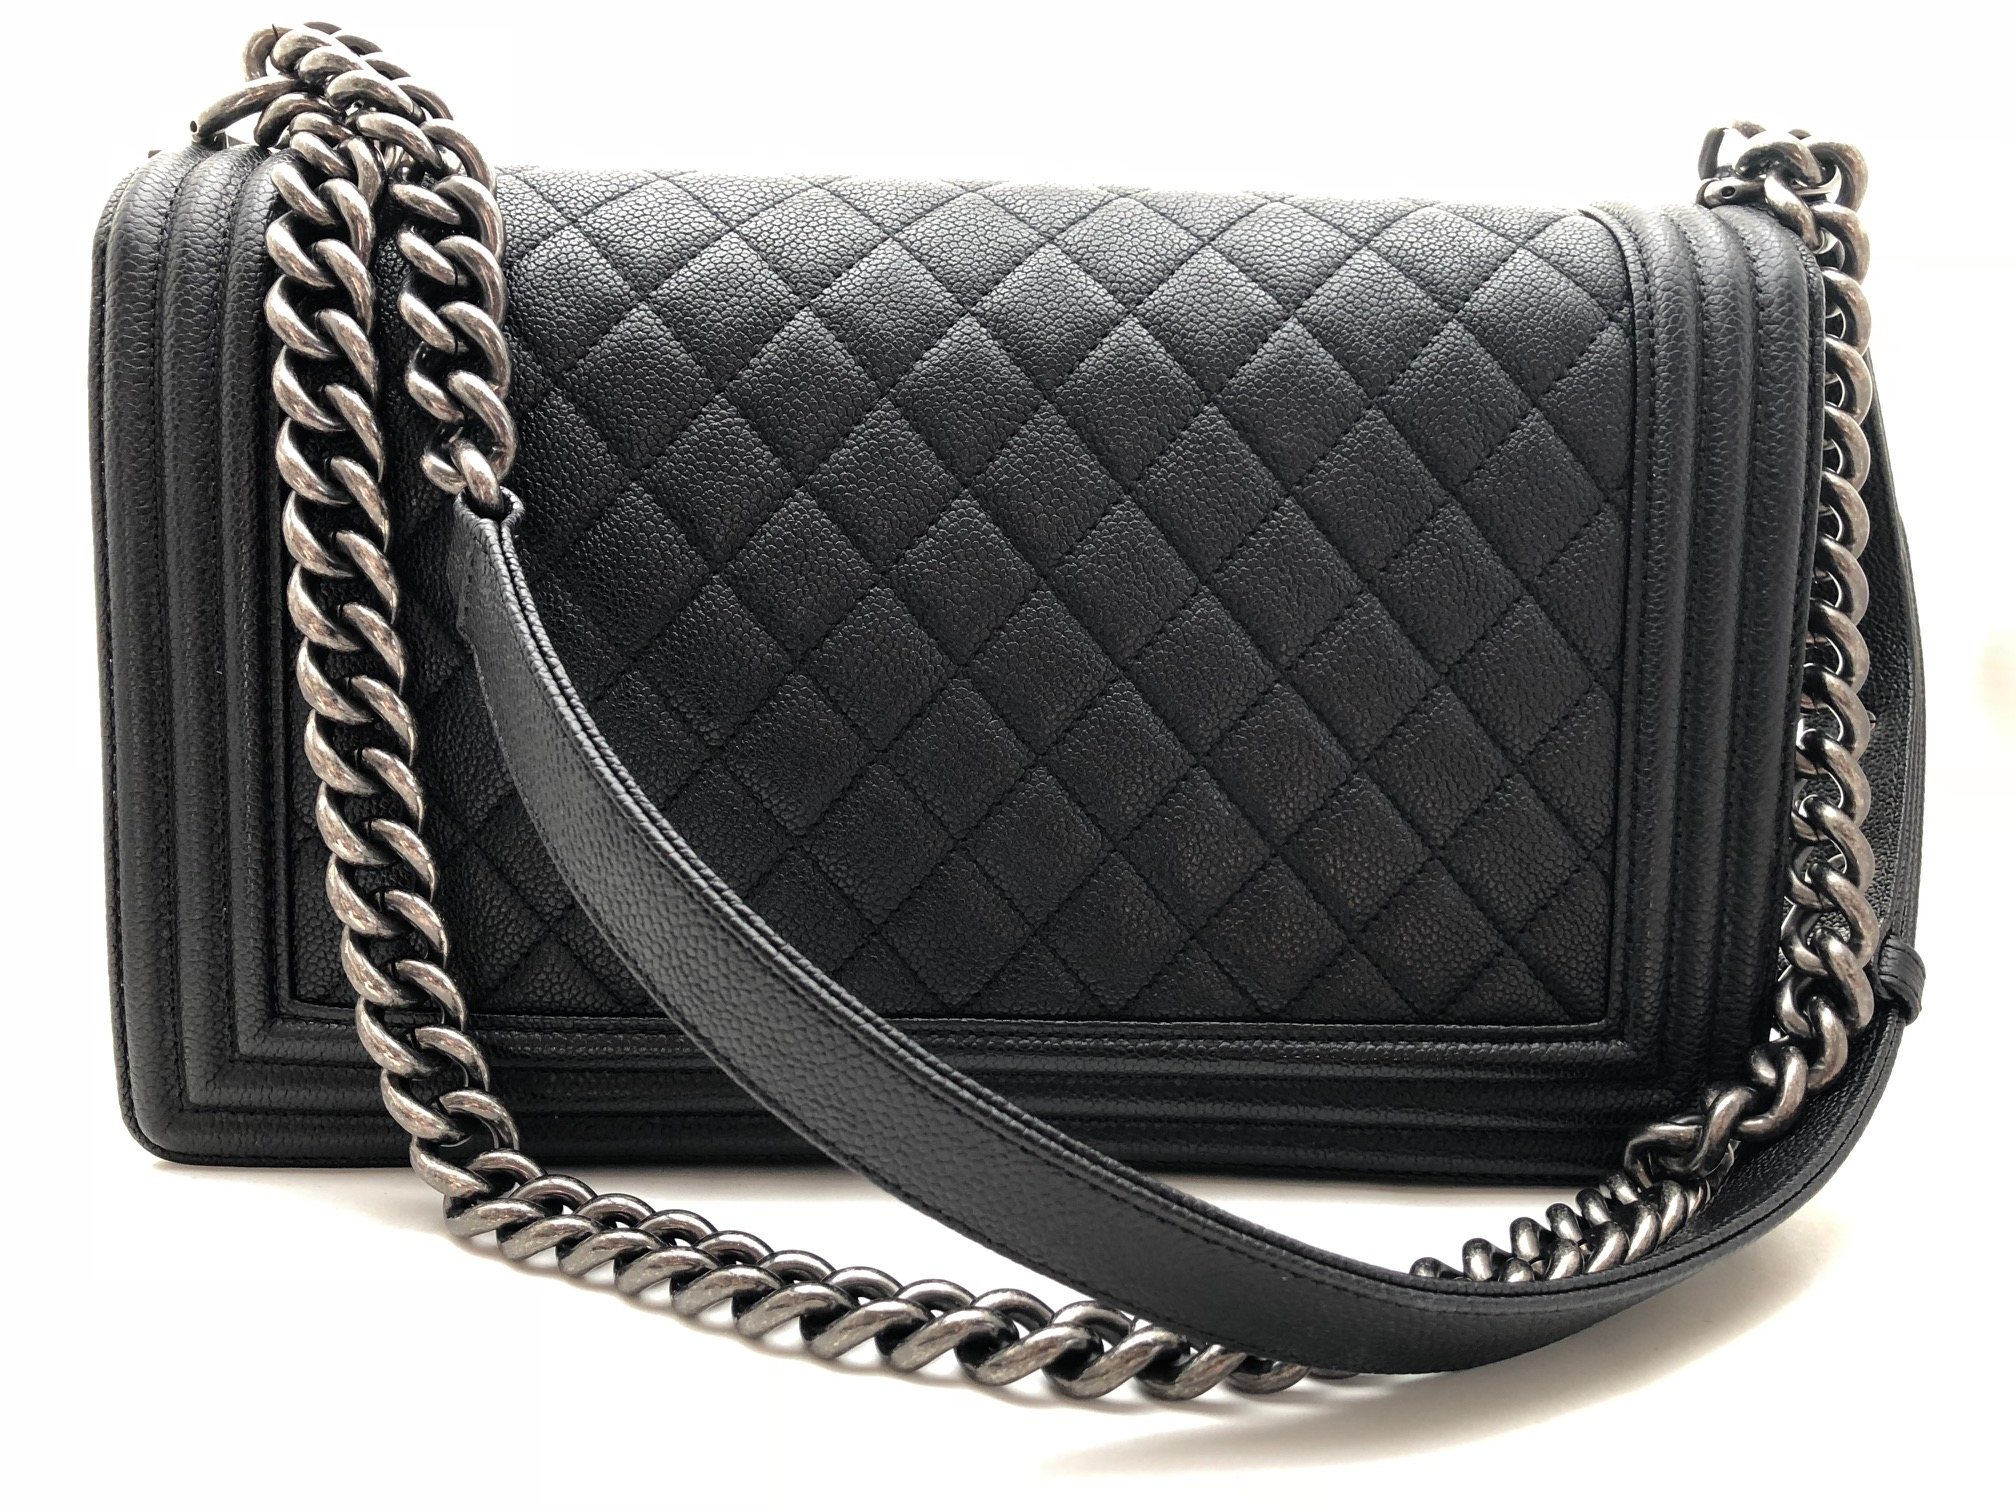 c3d94c940edd CHANEL Boy Bag - Chelsea Vintage Couture